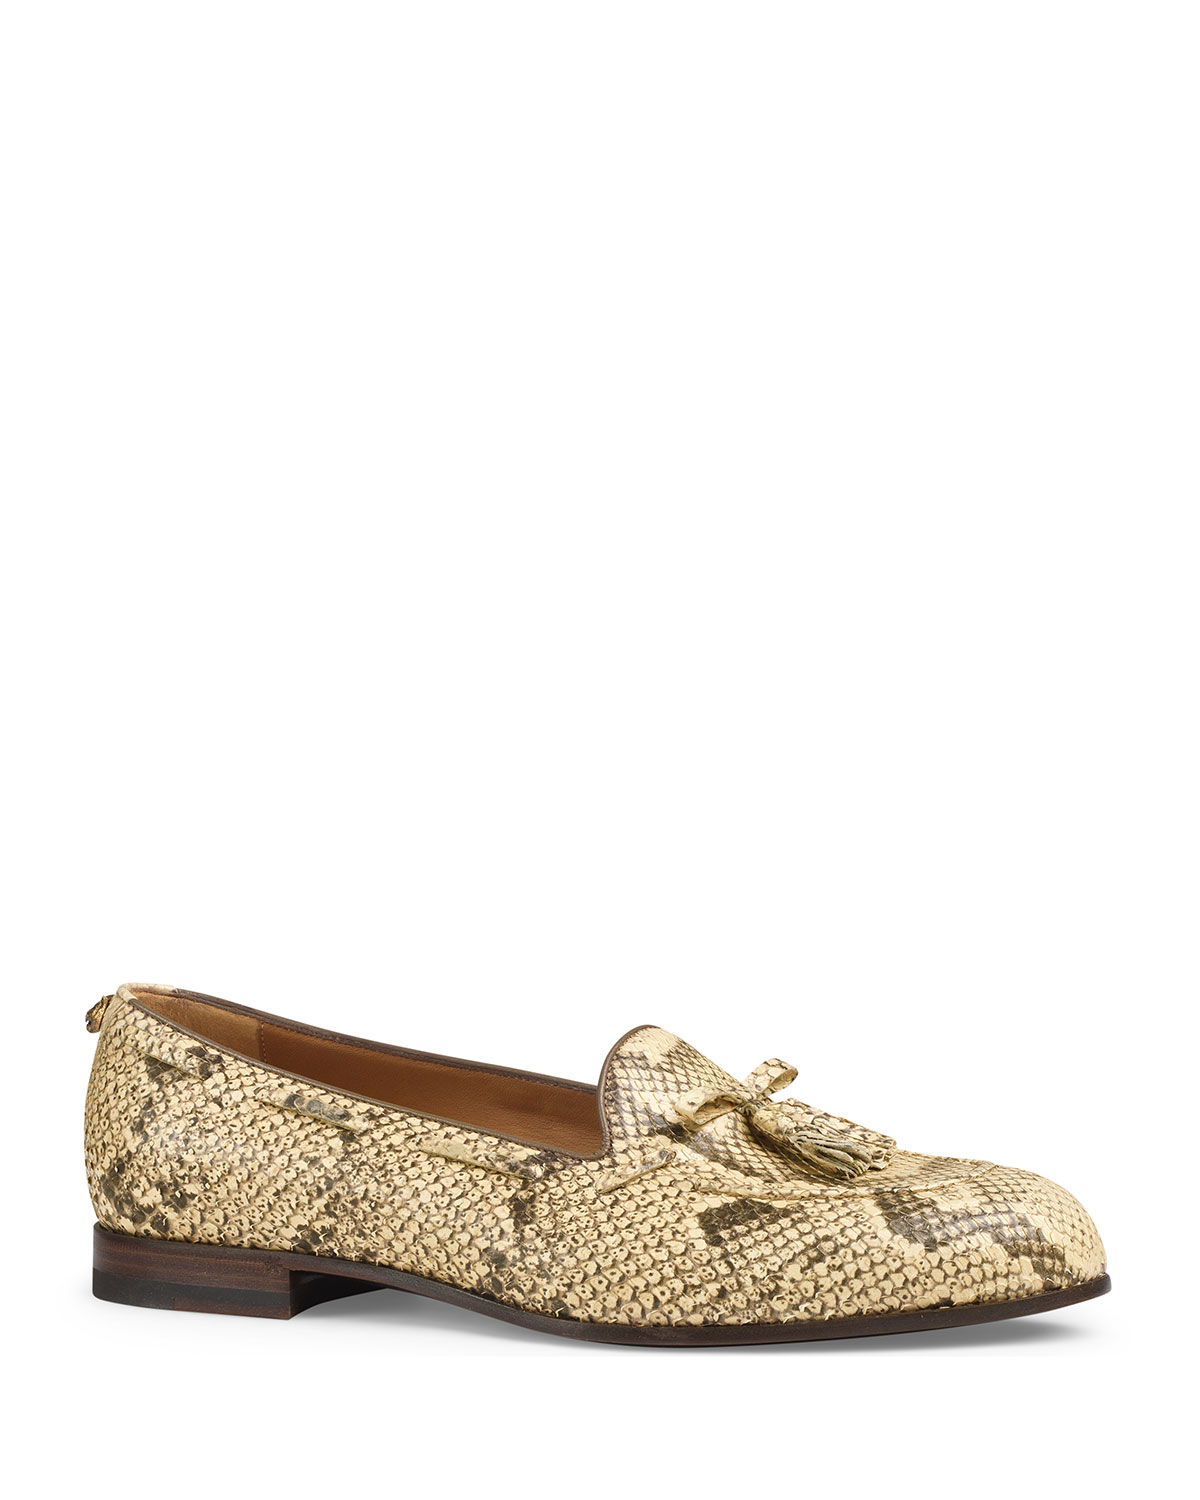 a1978668a Gucci Python Tassel Loafer | Neiman Marcus